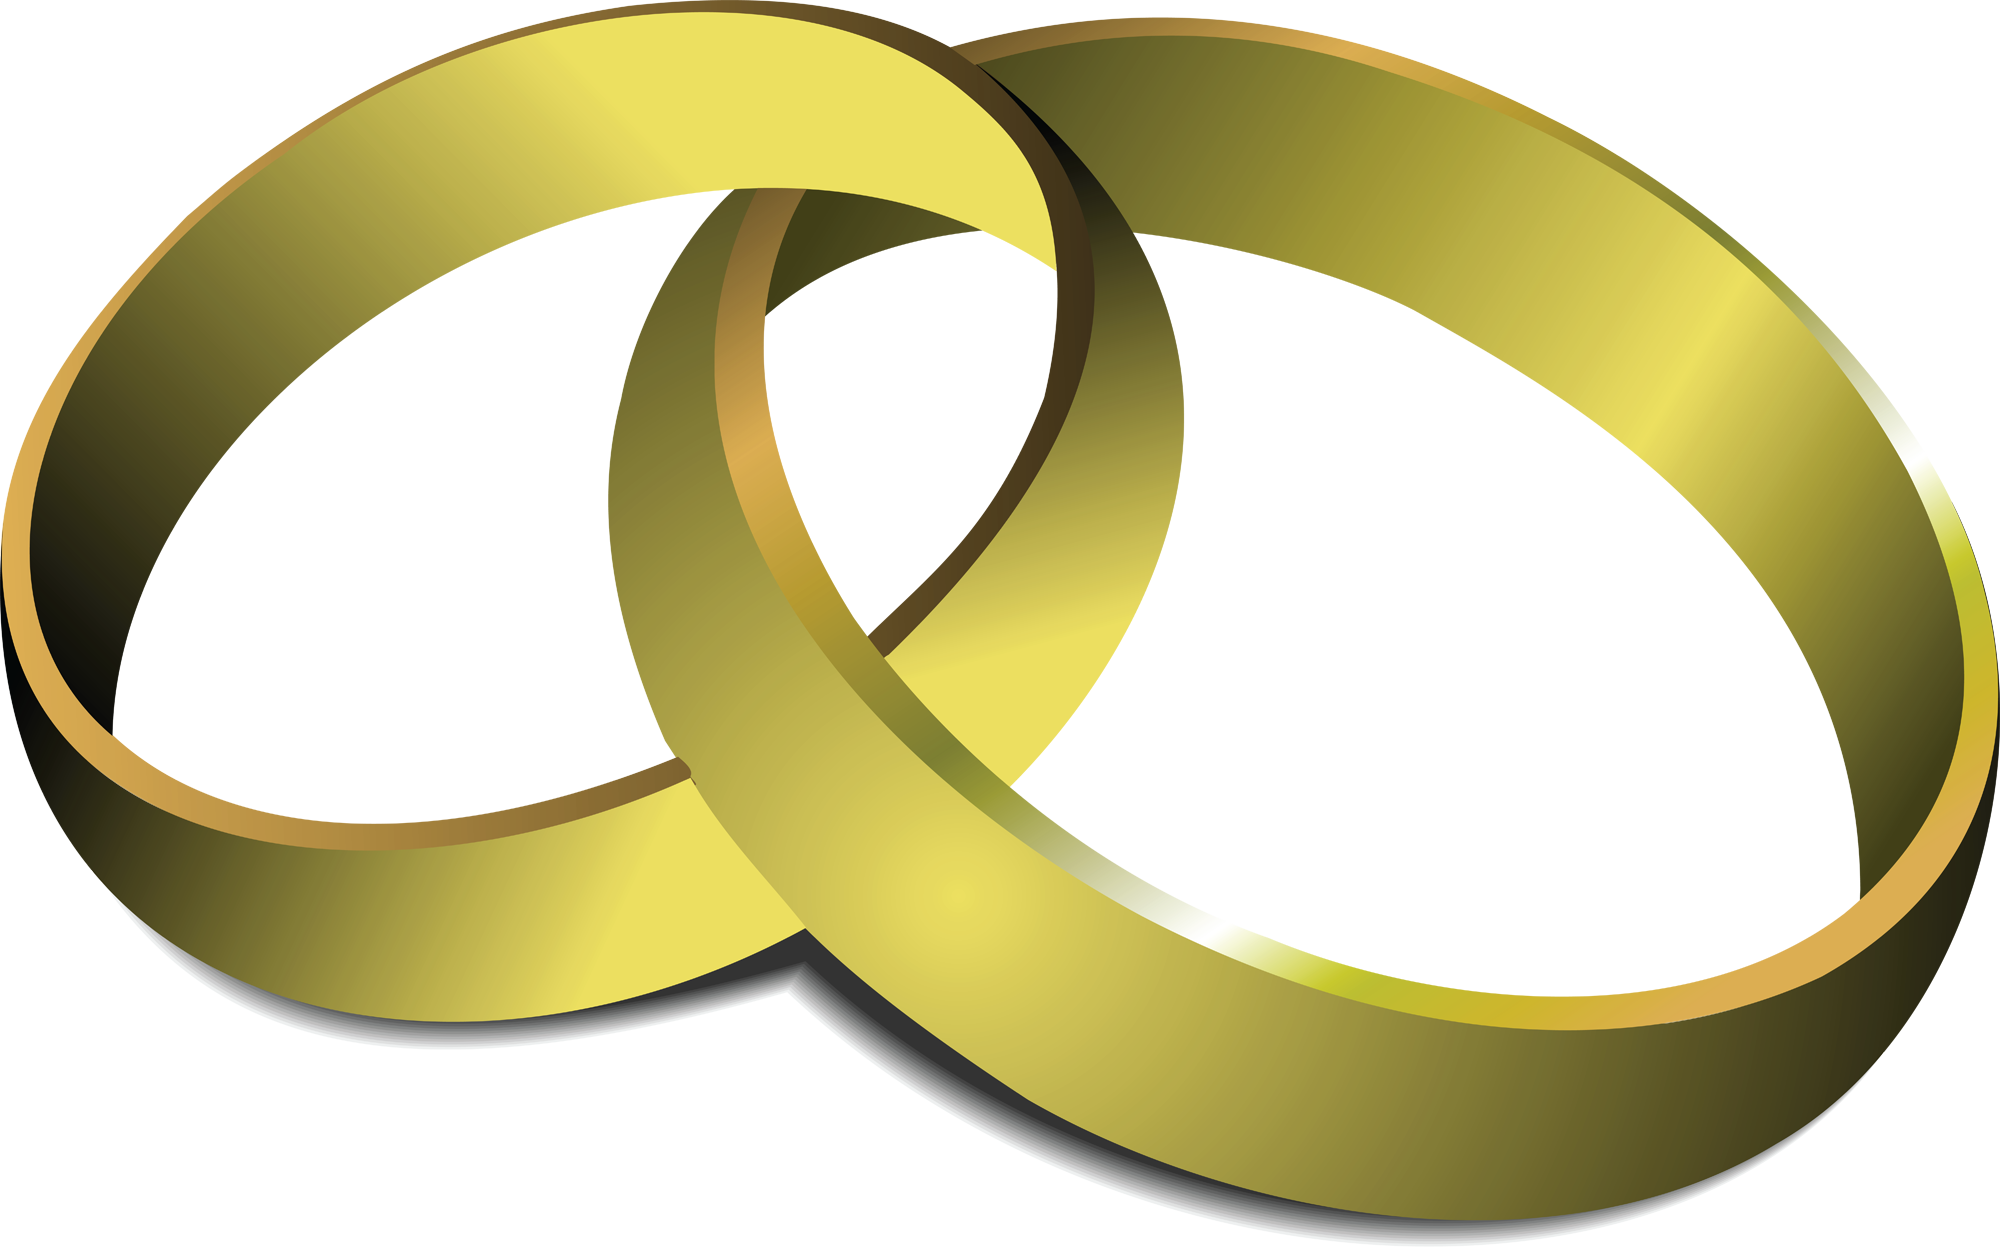 wedding rings clipart - photo #18